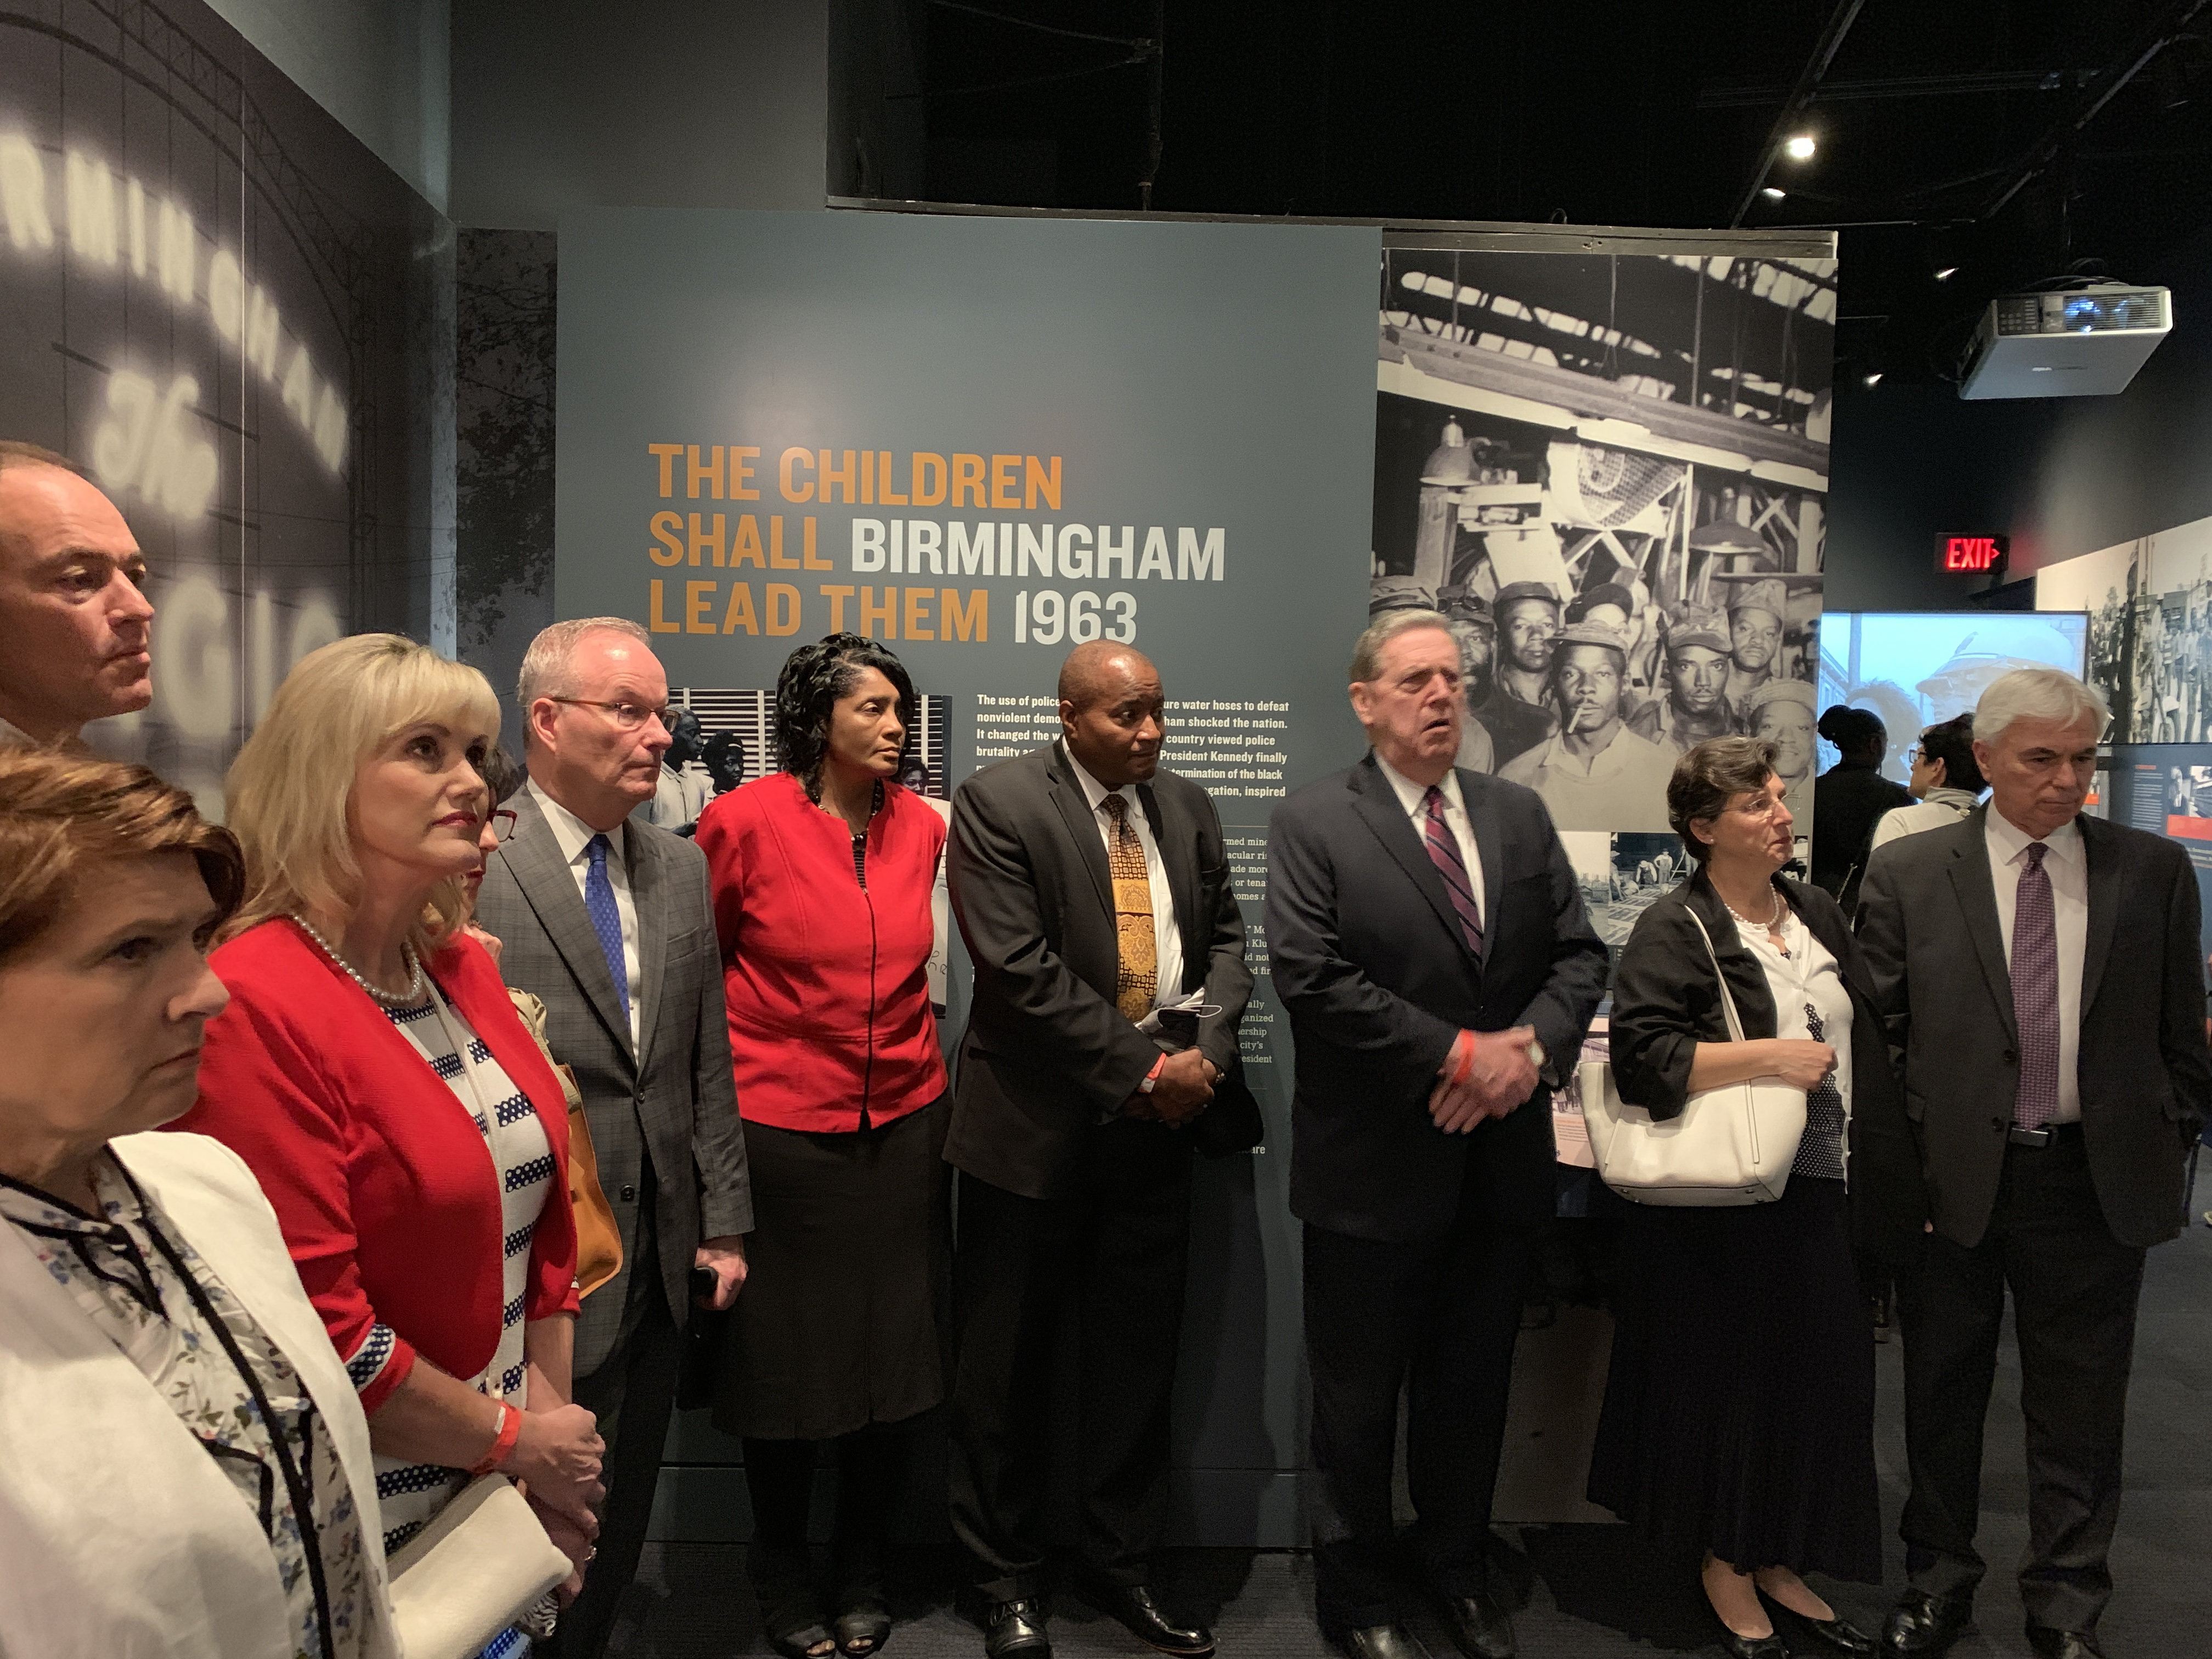 Elder Holland, third from right, tours through the Civil Rights Museum in downtown Memphis, Tennessee, with a group of Church leaders on May 4, 2019.